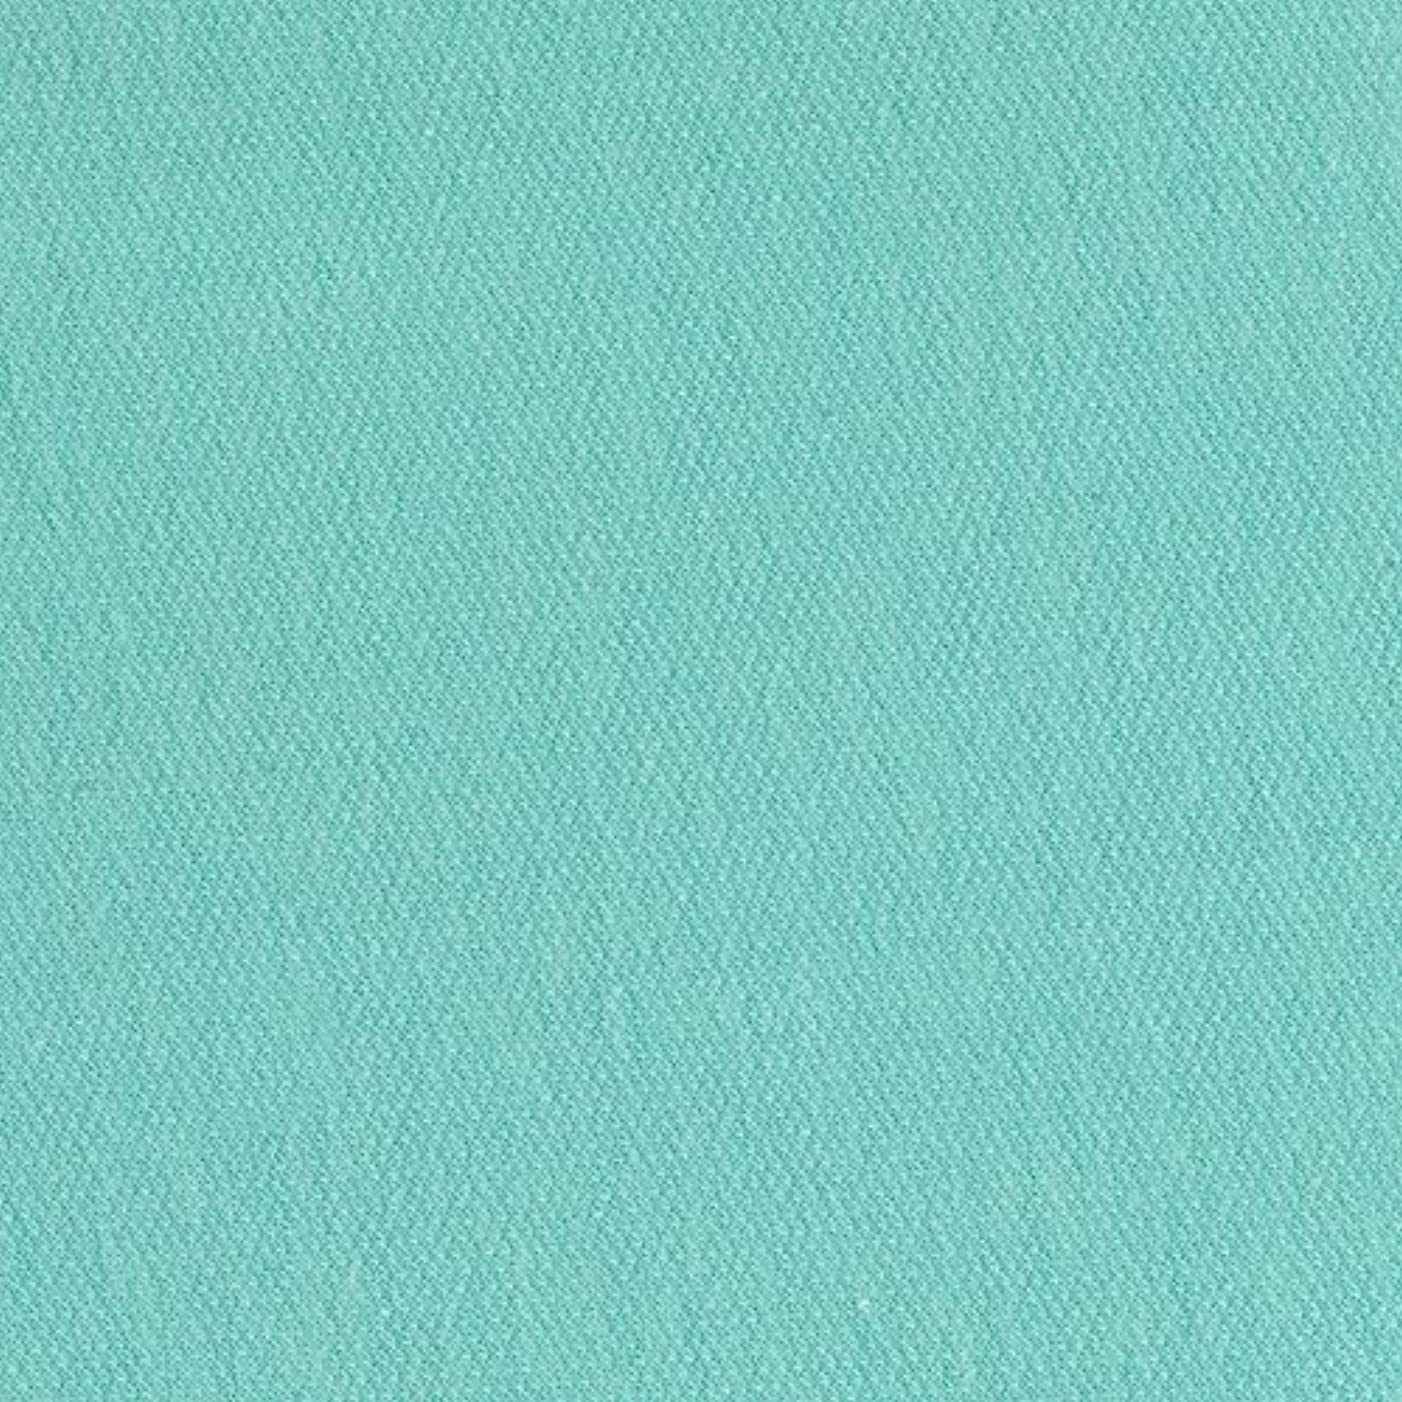 Lavitex French Terry Mint Fabric by The Yard,